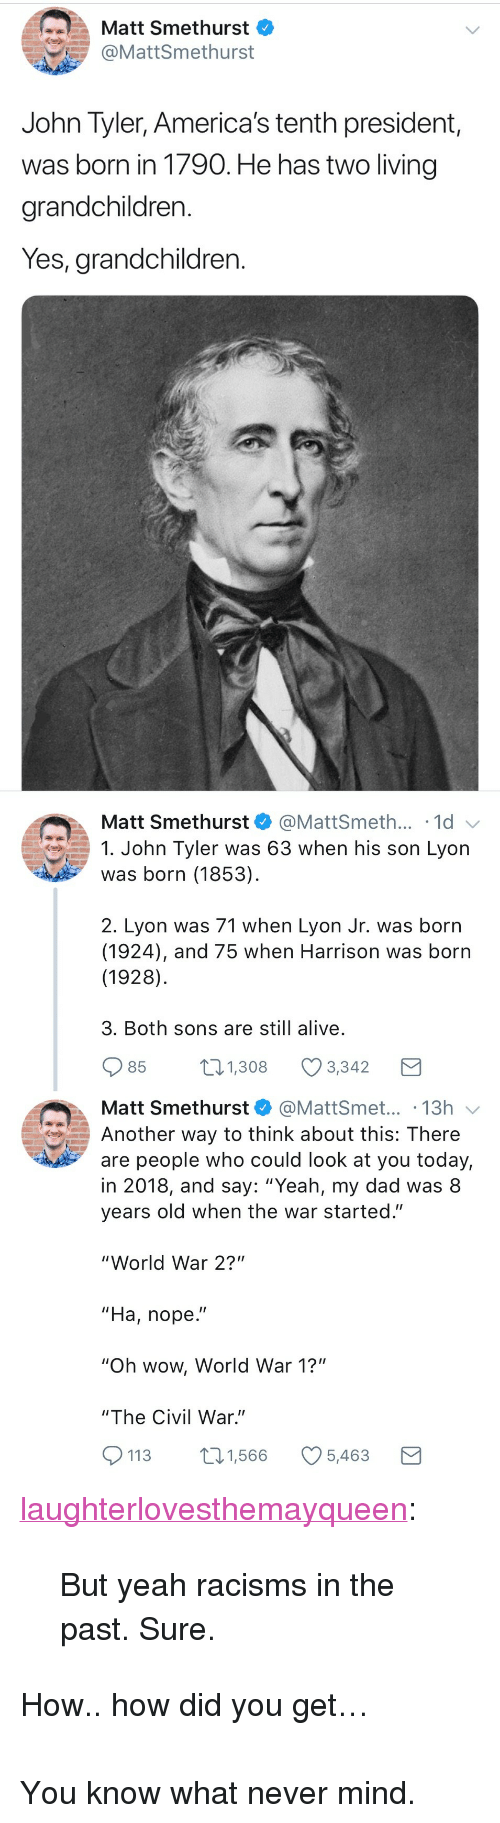 """Alive, Dad, and Tumblr: Matt Smethurst  @MattSmethurst  John Tyler, America's tenth president,  was born in 1790. He has two living  grandchildren.  Yes, grandchildren.   Matt Smethurst  @MattSmeth... 1d  1. John Tyler was 63 when his son Lyon  was born (1853)  2. Lyon was 71 when Lyon Jr. was born  (1924), and 75 when Harrison was born  (1928)  3. Both sons are still alive  85  1.308 Ø3342  Matt Smethurst@MattSmet... .13h  Another way to think about this: There  are people who could look at you today,  in 2018, and say: """"Yeah, my dad was 8  years old when the war started.""""  """"World War 2?""""  """"Ha, nope.""""  """"Oh wow, World War 1?""""  """"The Civil War.""""  113 1,566 5,463 <p><a href=""""http://laughterlovesthemayqueen.tumblr.com/post/173047841984/but-yeah-racisms-in-the-past-sure"""" class=""""tumblr_blog"""">laughterlovesthemayqueen</a>:</p>  <blockquote><p>But yeah racisms in the past. Sure. </p></blockquote>  <p>How.. how did you get…</p><p><br/></p><p>You know what never mind.</p>"""